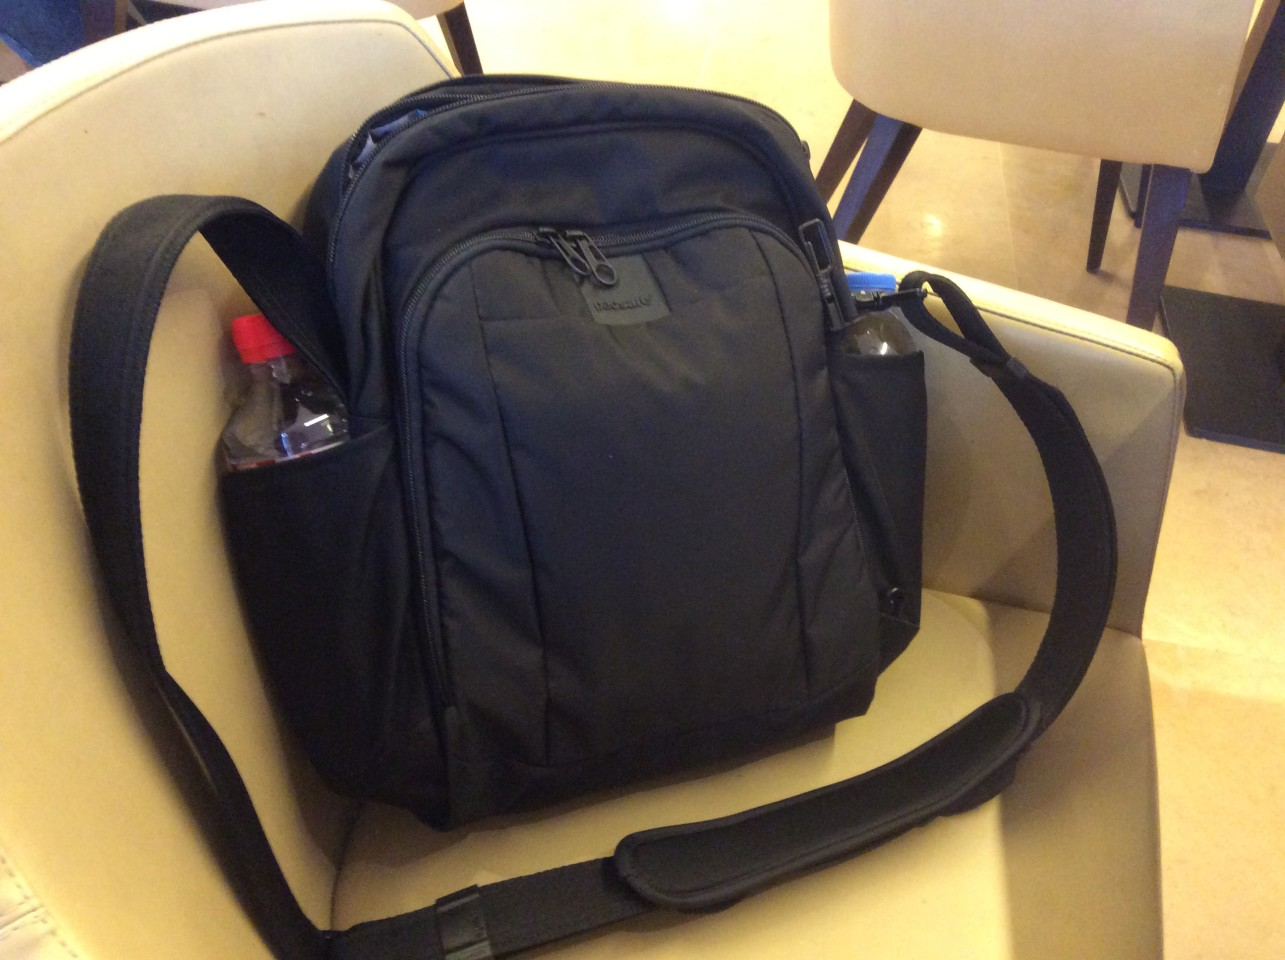 What's in your bag? My cross shoulder day pack